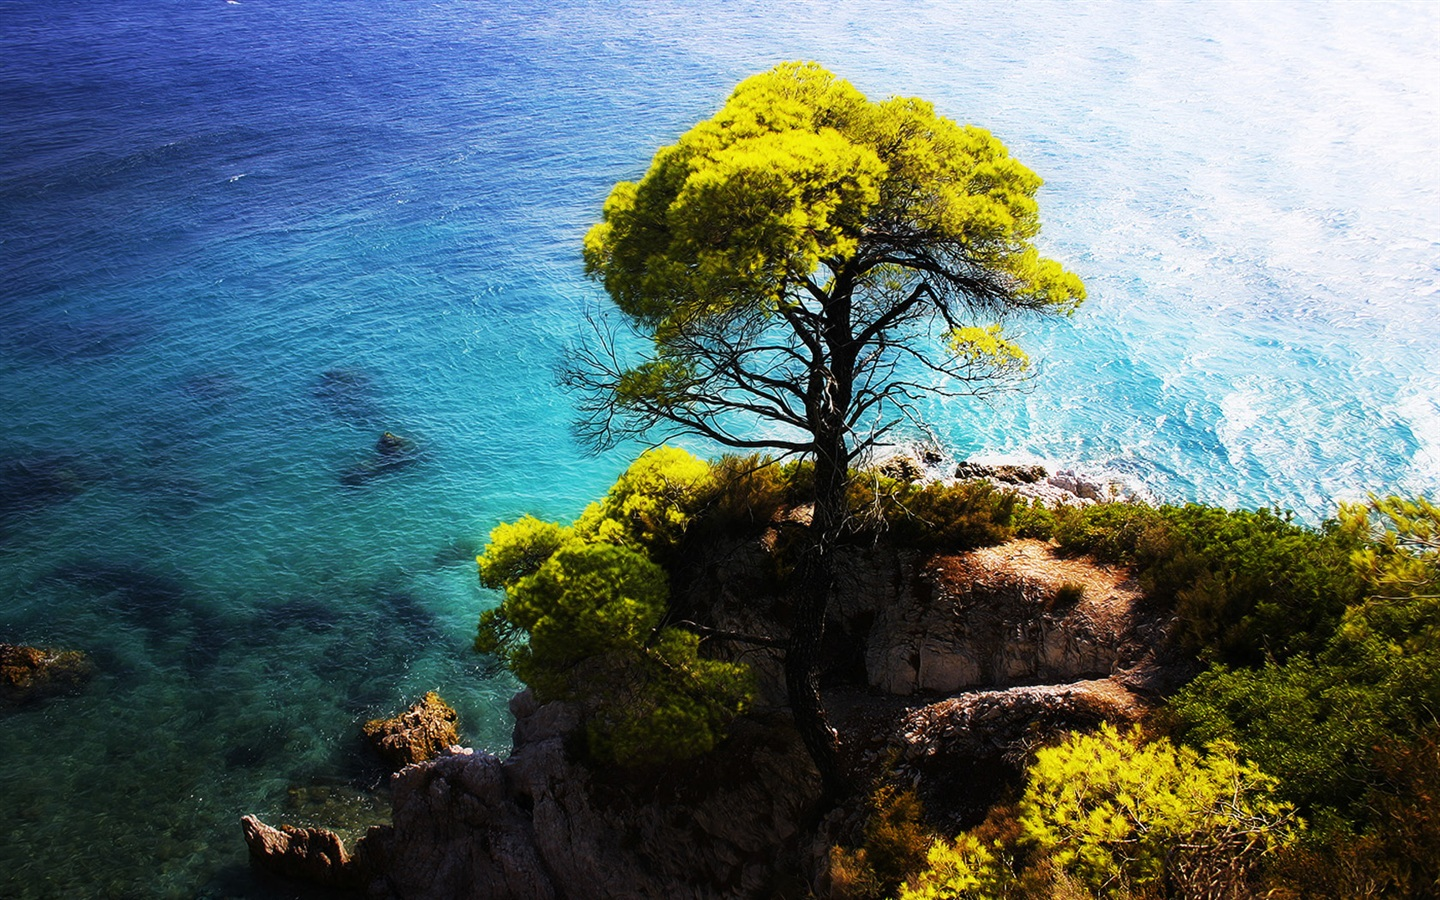 Wallpaper Blue Iphone X Wallpaper The Blue Sea Side Stands A Tree On The Cliff